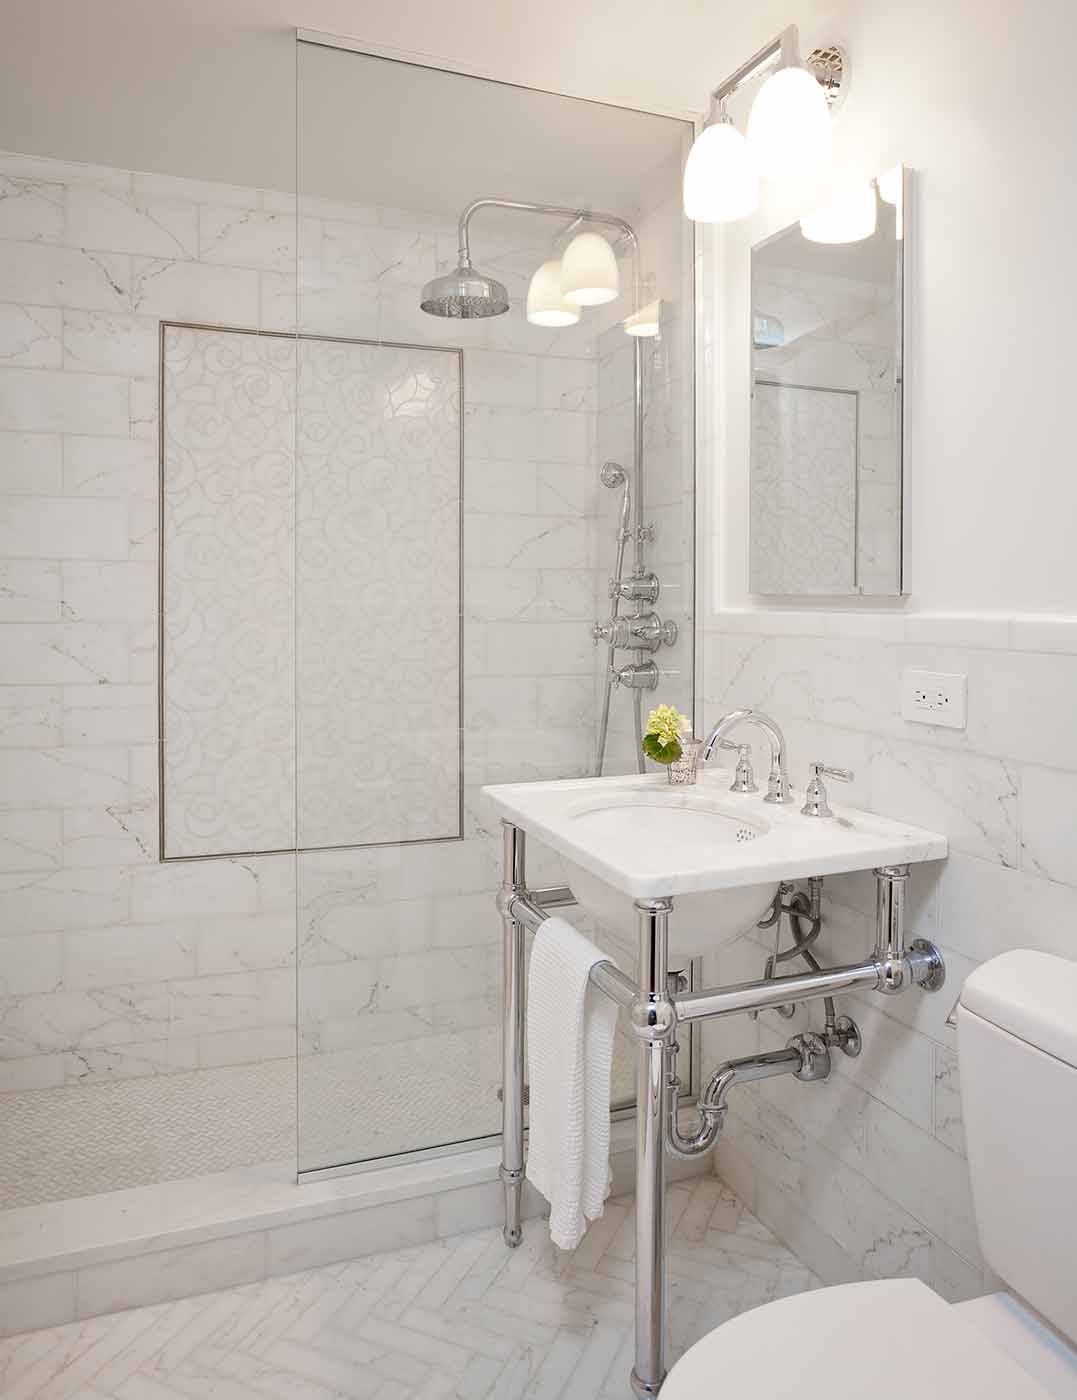 Walk-in shower with a marble field tile, floral pattern for the inset and an open pedestal sink